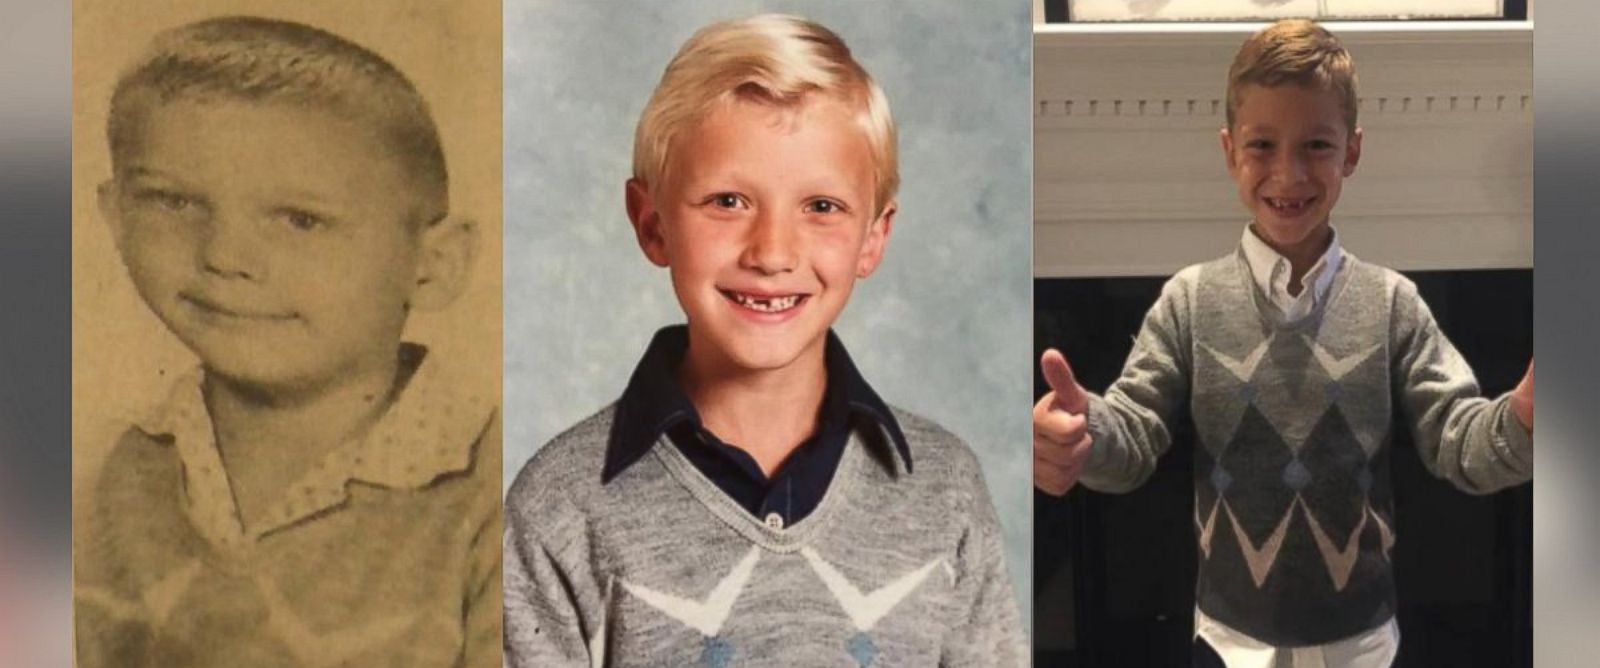 PHOTO: The three generations of boys that have worn the sweater are pictured.